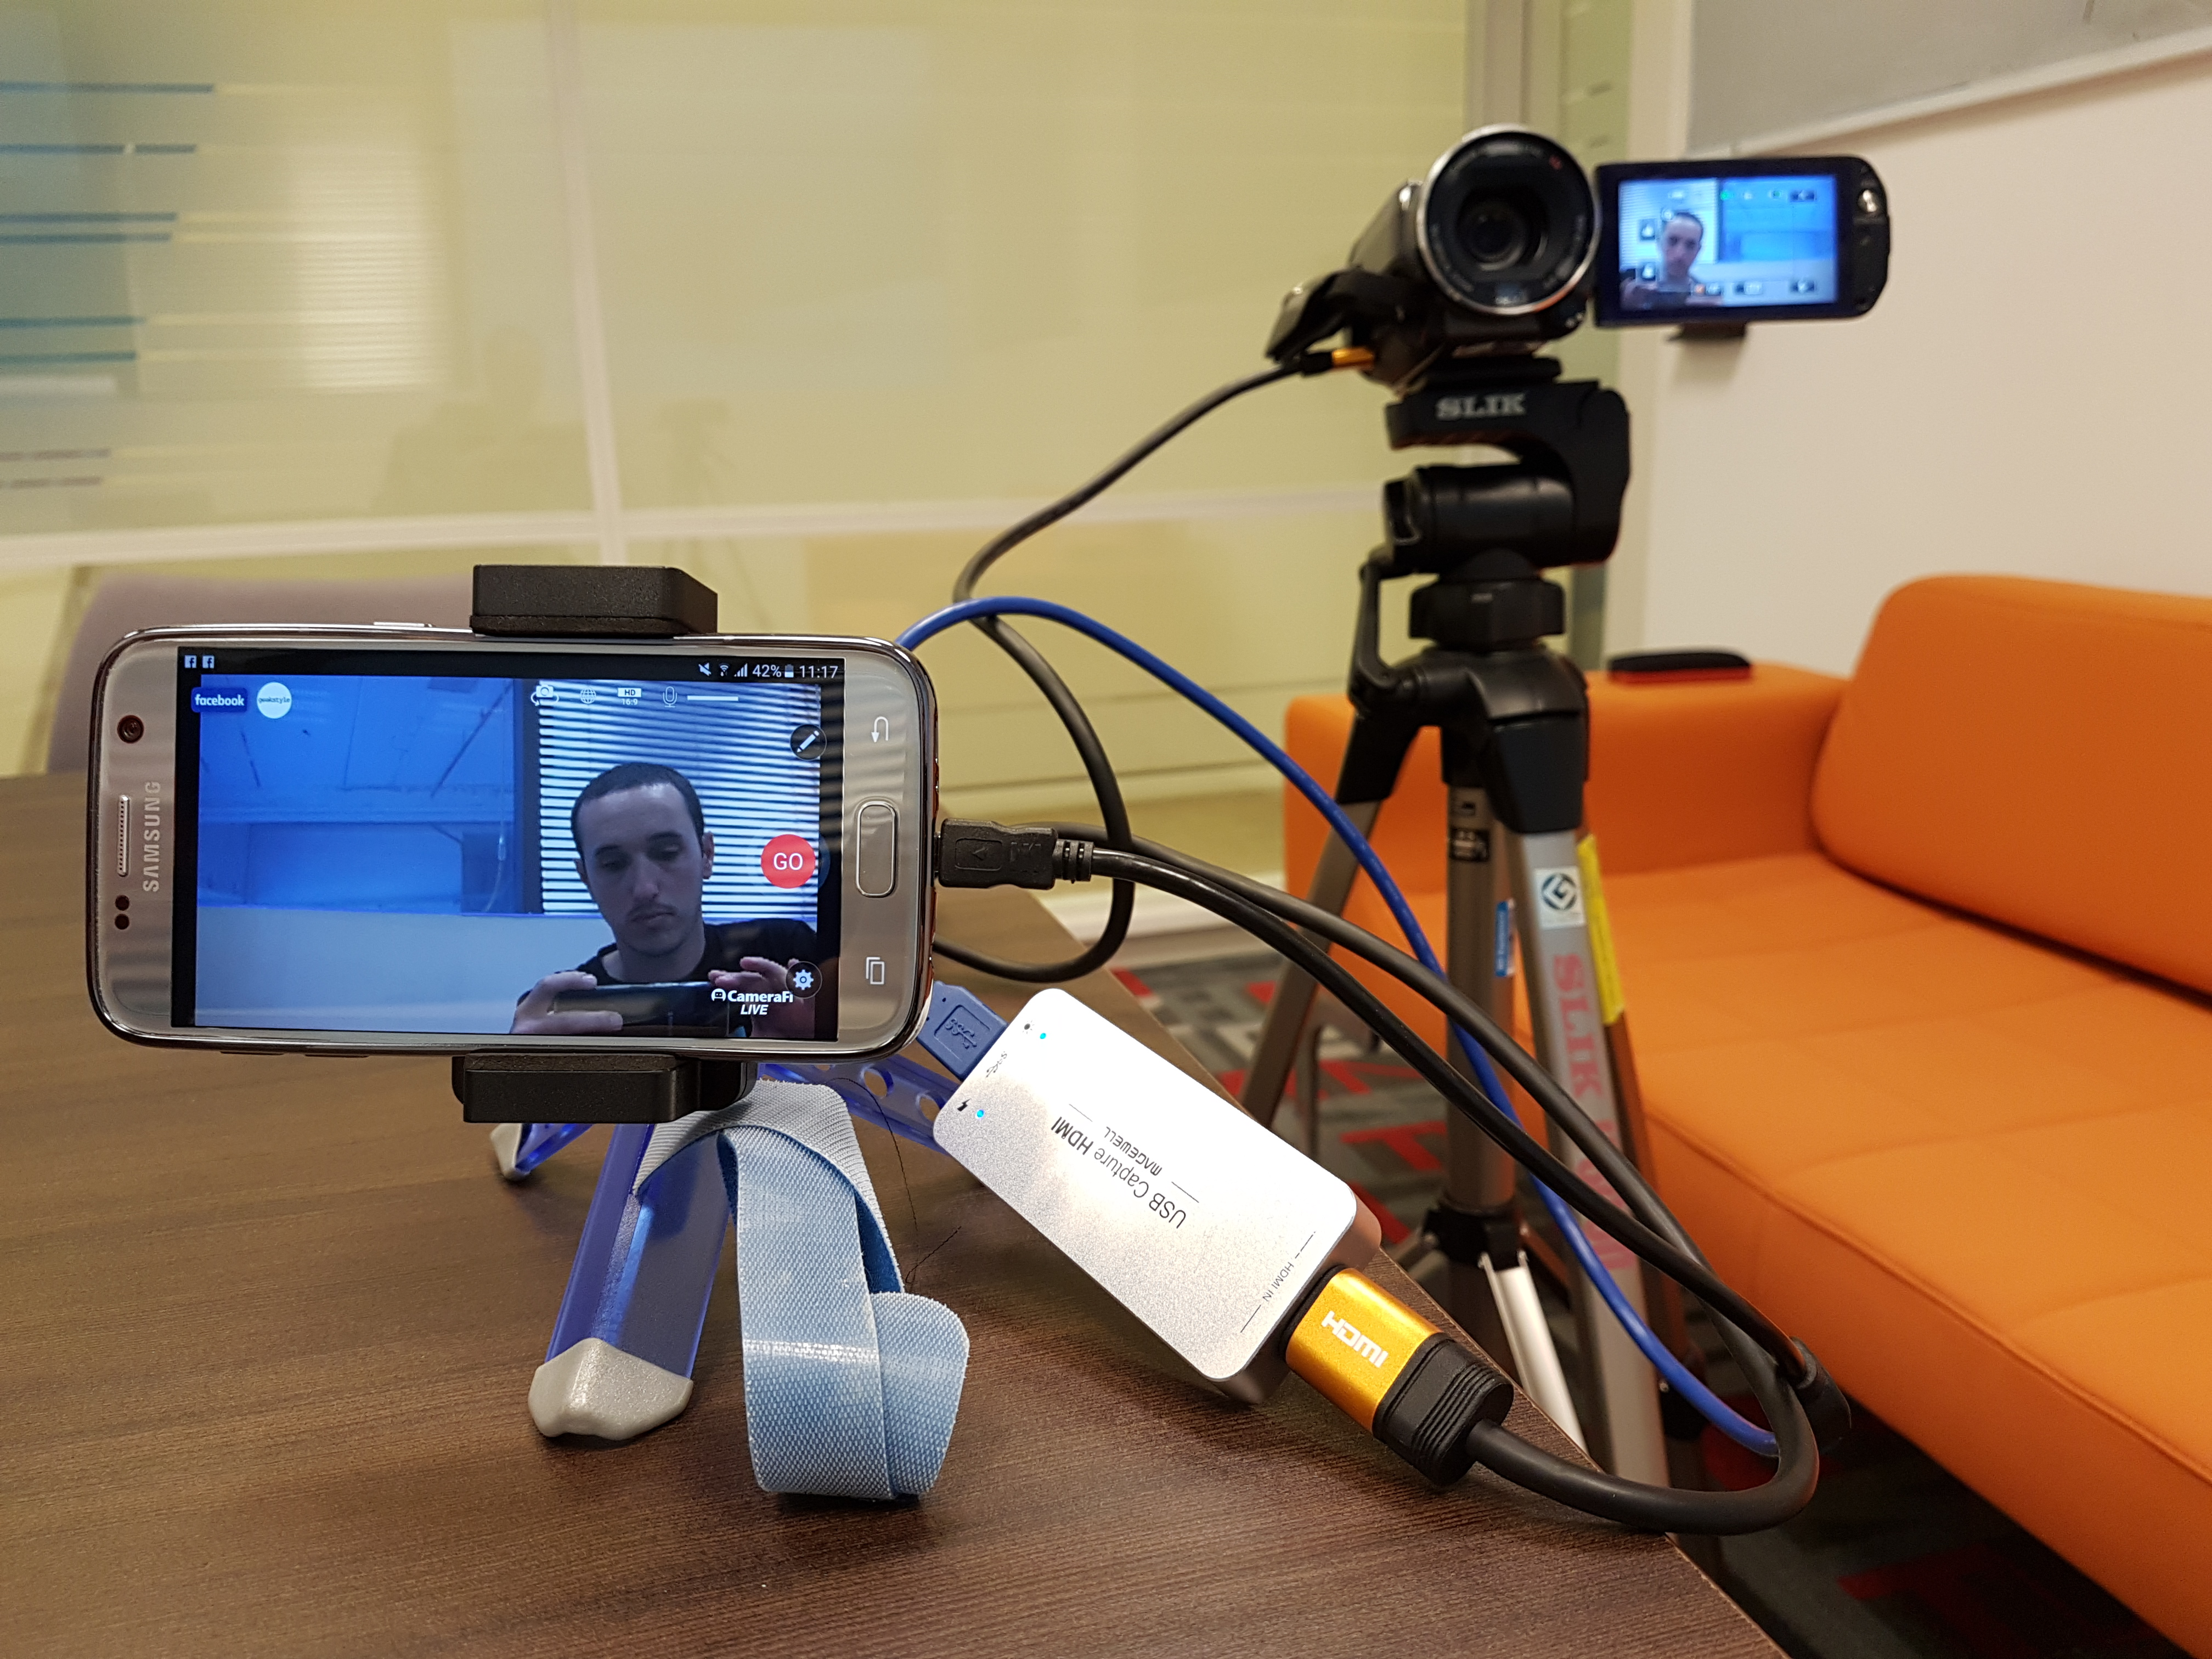 Facebook Live From A Pro Camera Using Smartphone Mobile Phone Otg Connect Kit For Android This Is How It Looks Connected